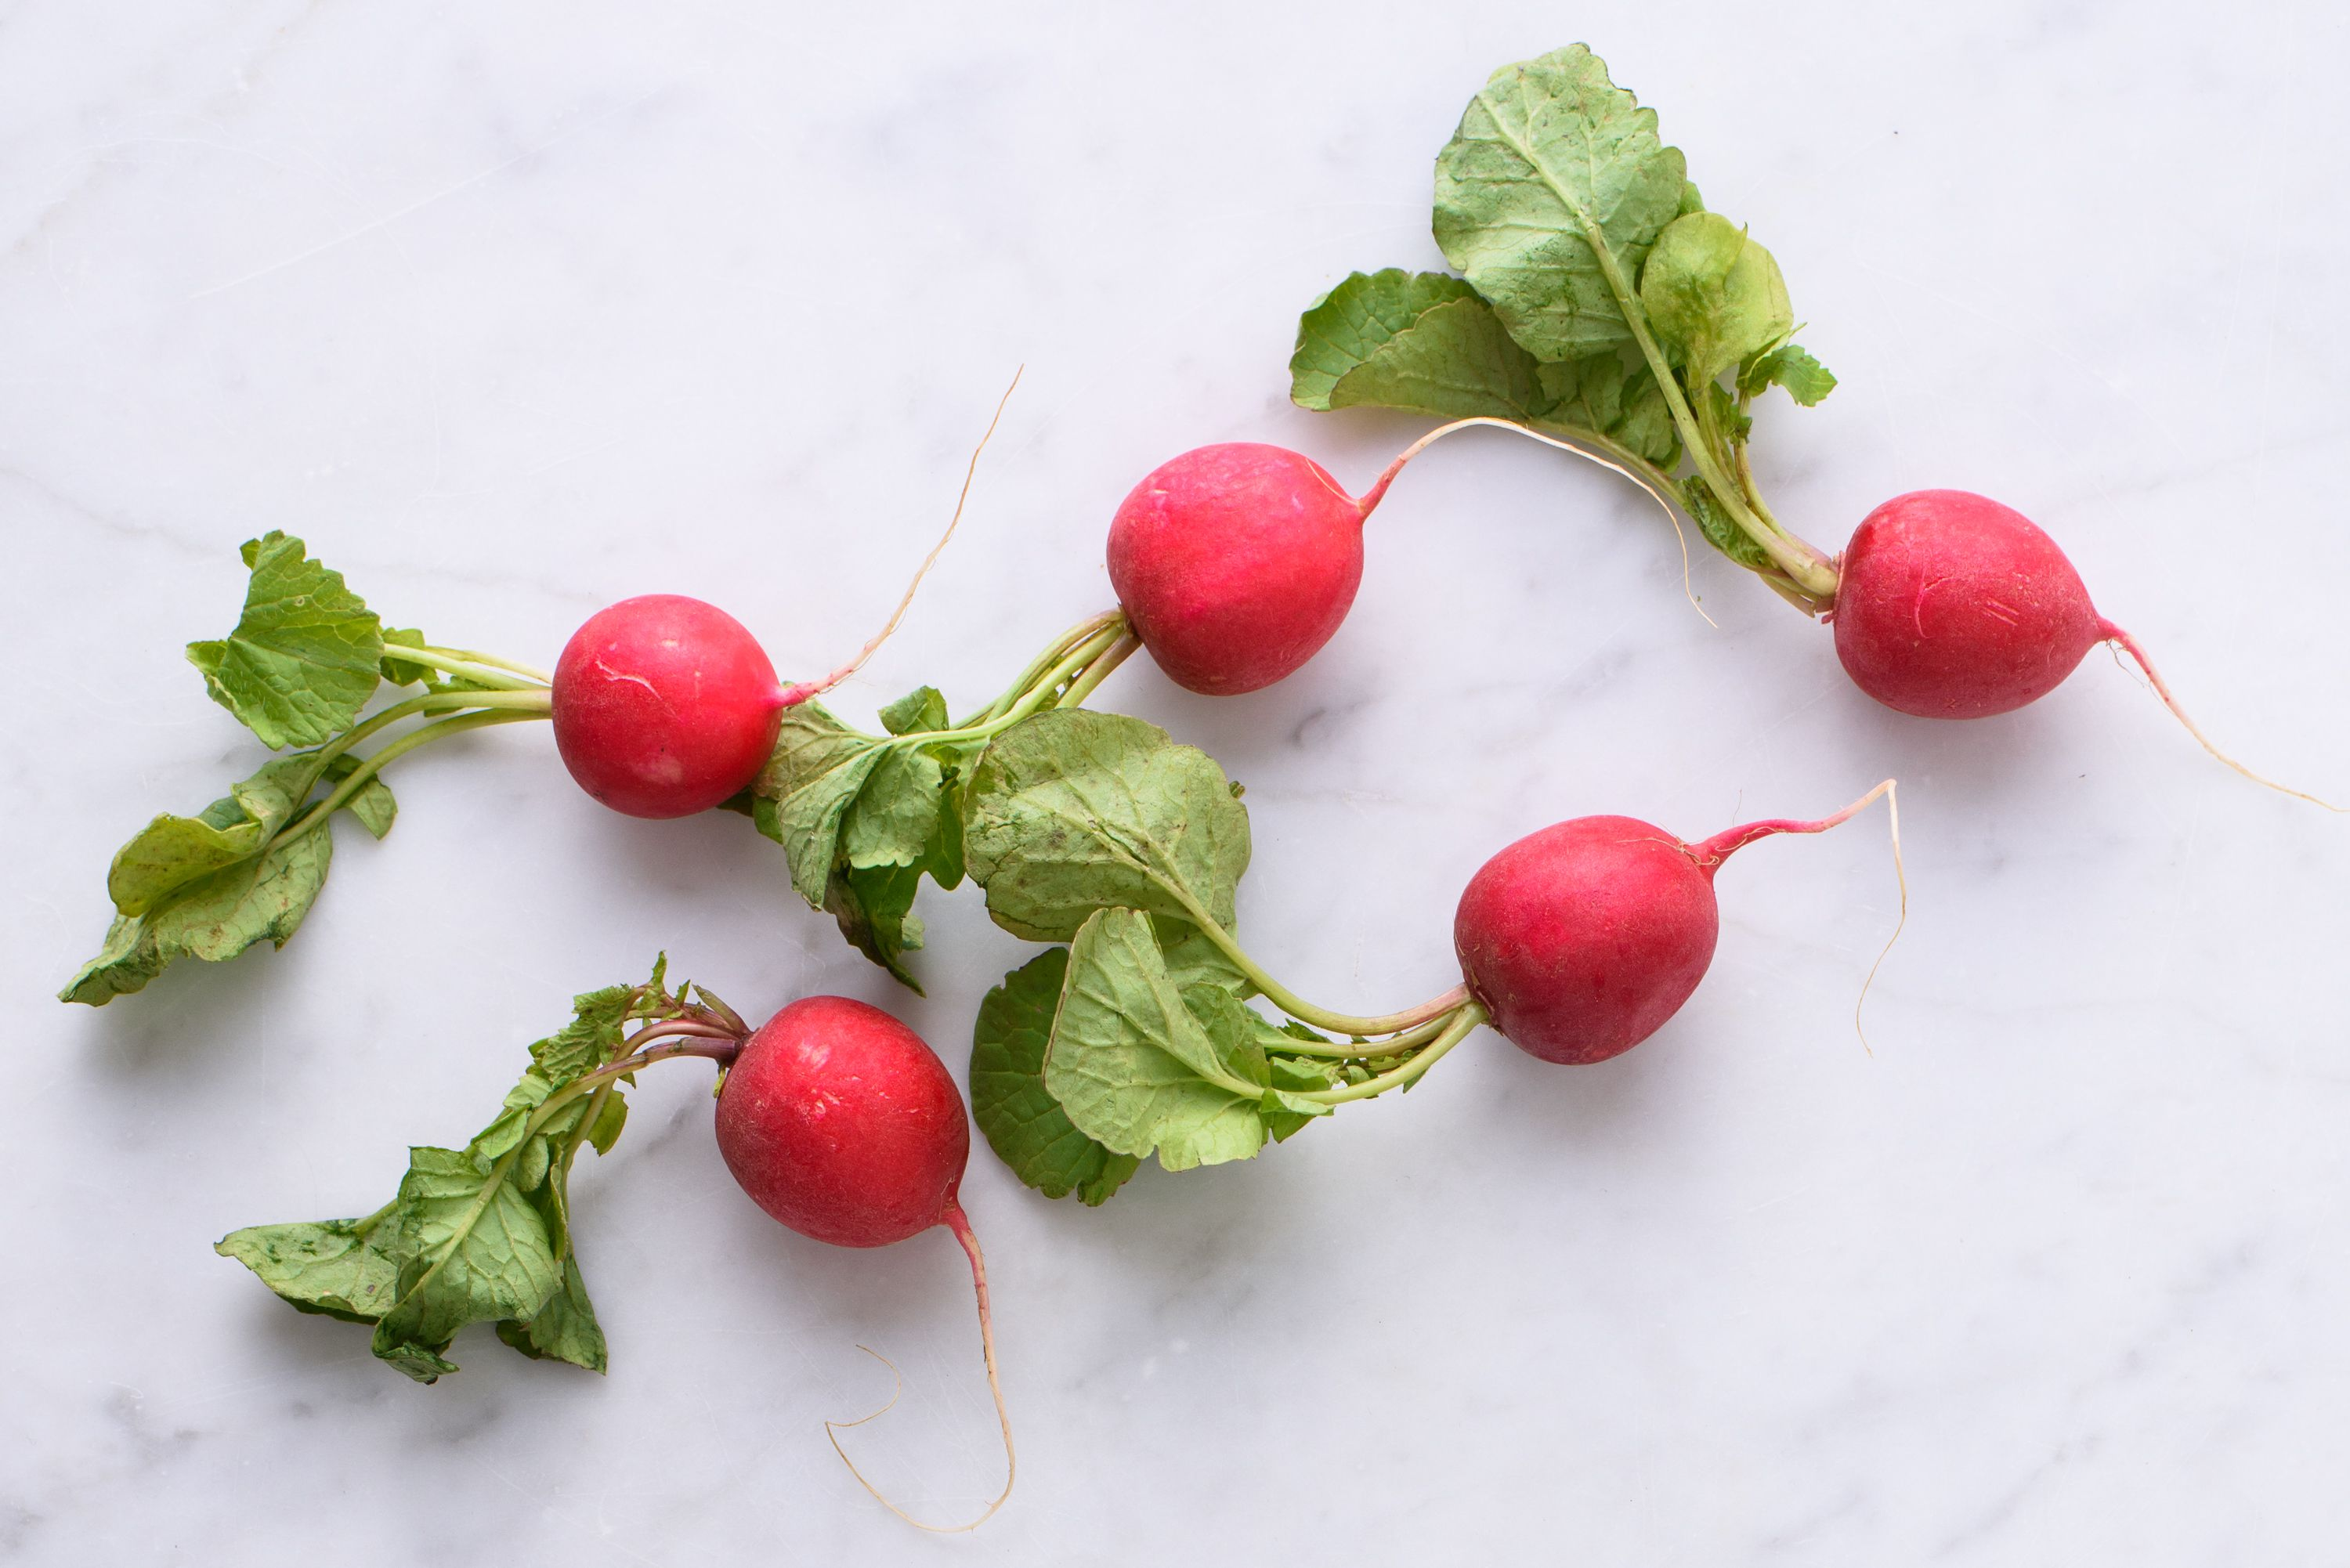 Top 15 Natural Foods That Curb Hunger and Fight Cravings